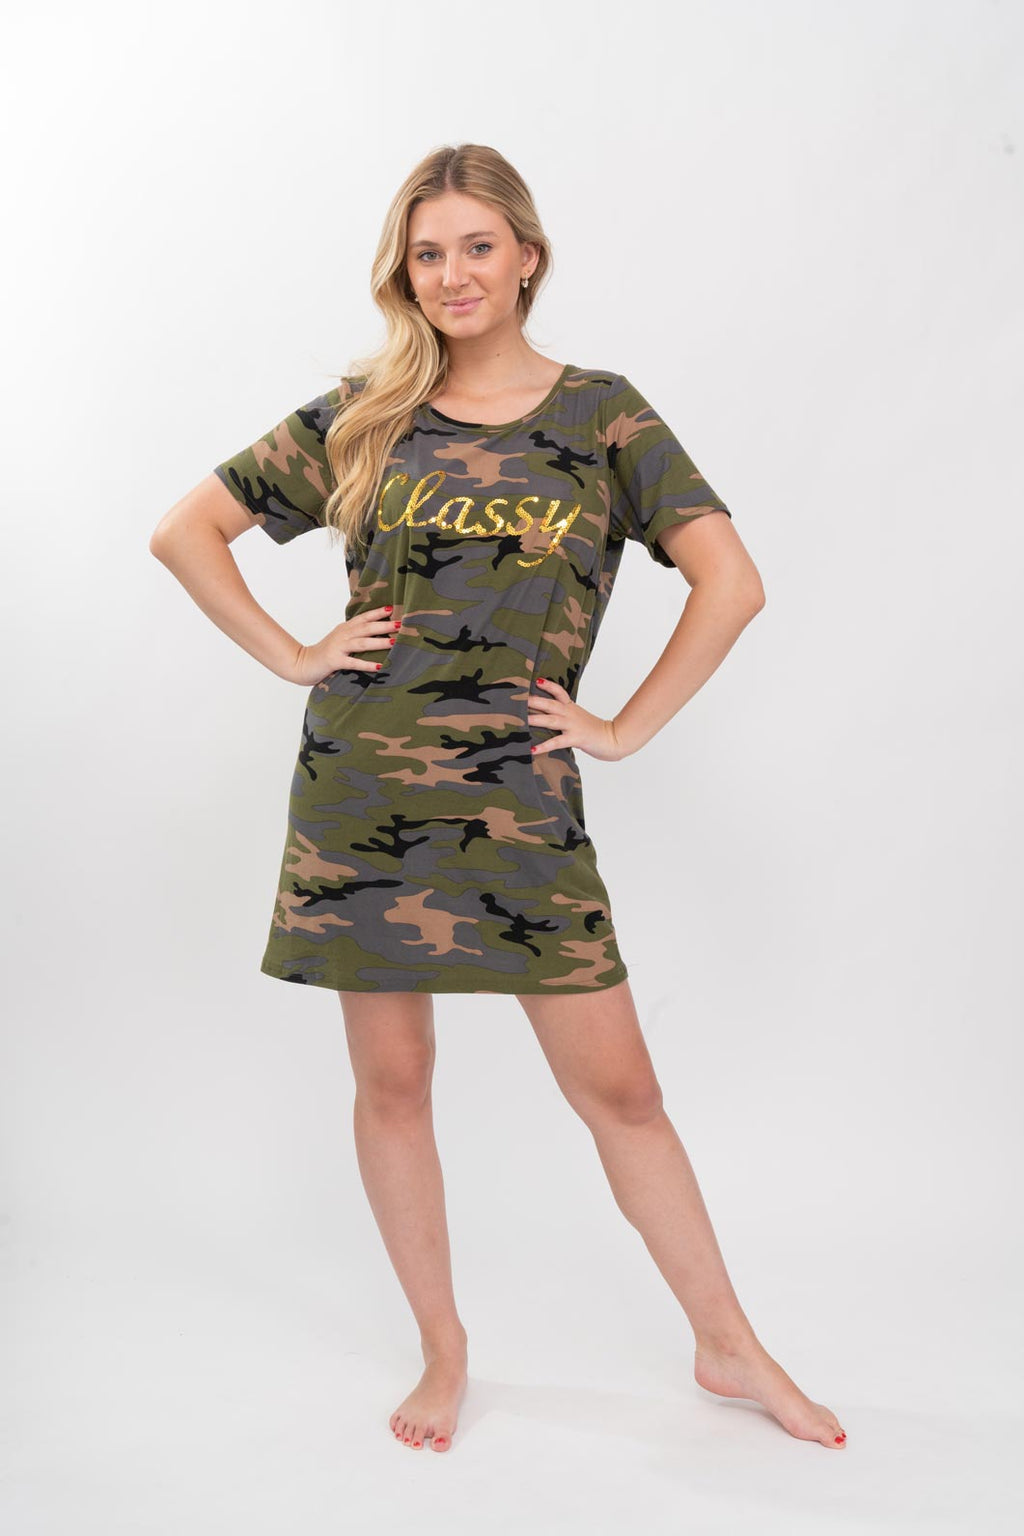 Camo Dorm Shirt - Pajamas